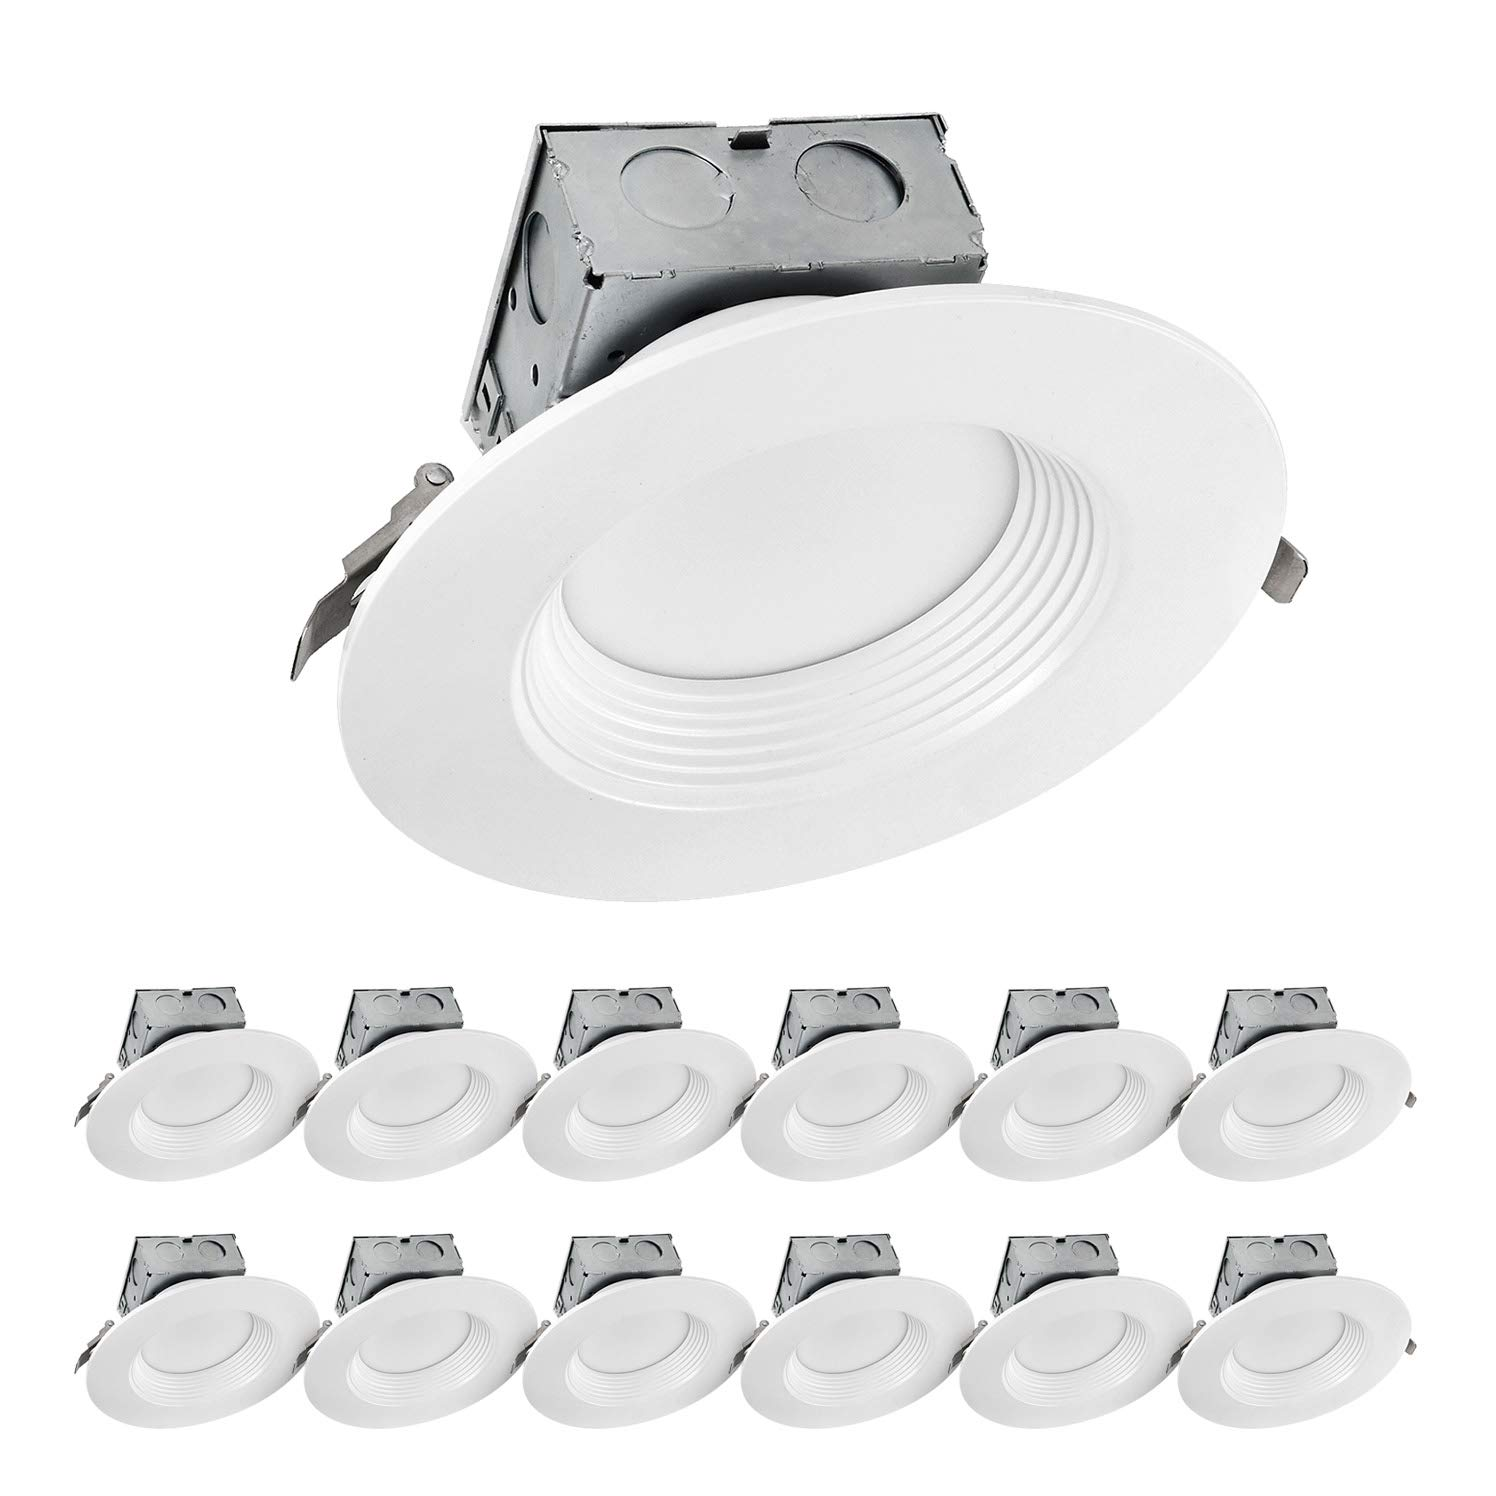 LUXTER (12 Pack) 6 inch LED Ceiling Recessed Downlight With Junction Box, LED Canless Downlight, Baffle Trim, Dimmable, IC Rated, 15W(120Watt Repl) 4000K 1100Lm Wet Location ETL and Energy Star Listed